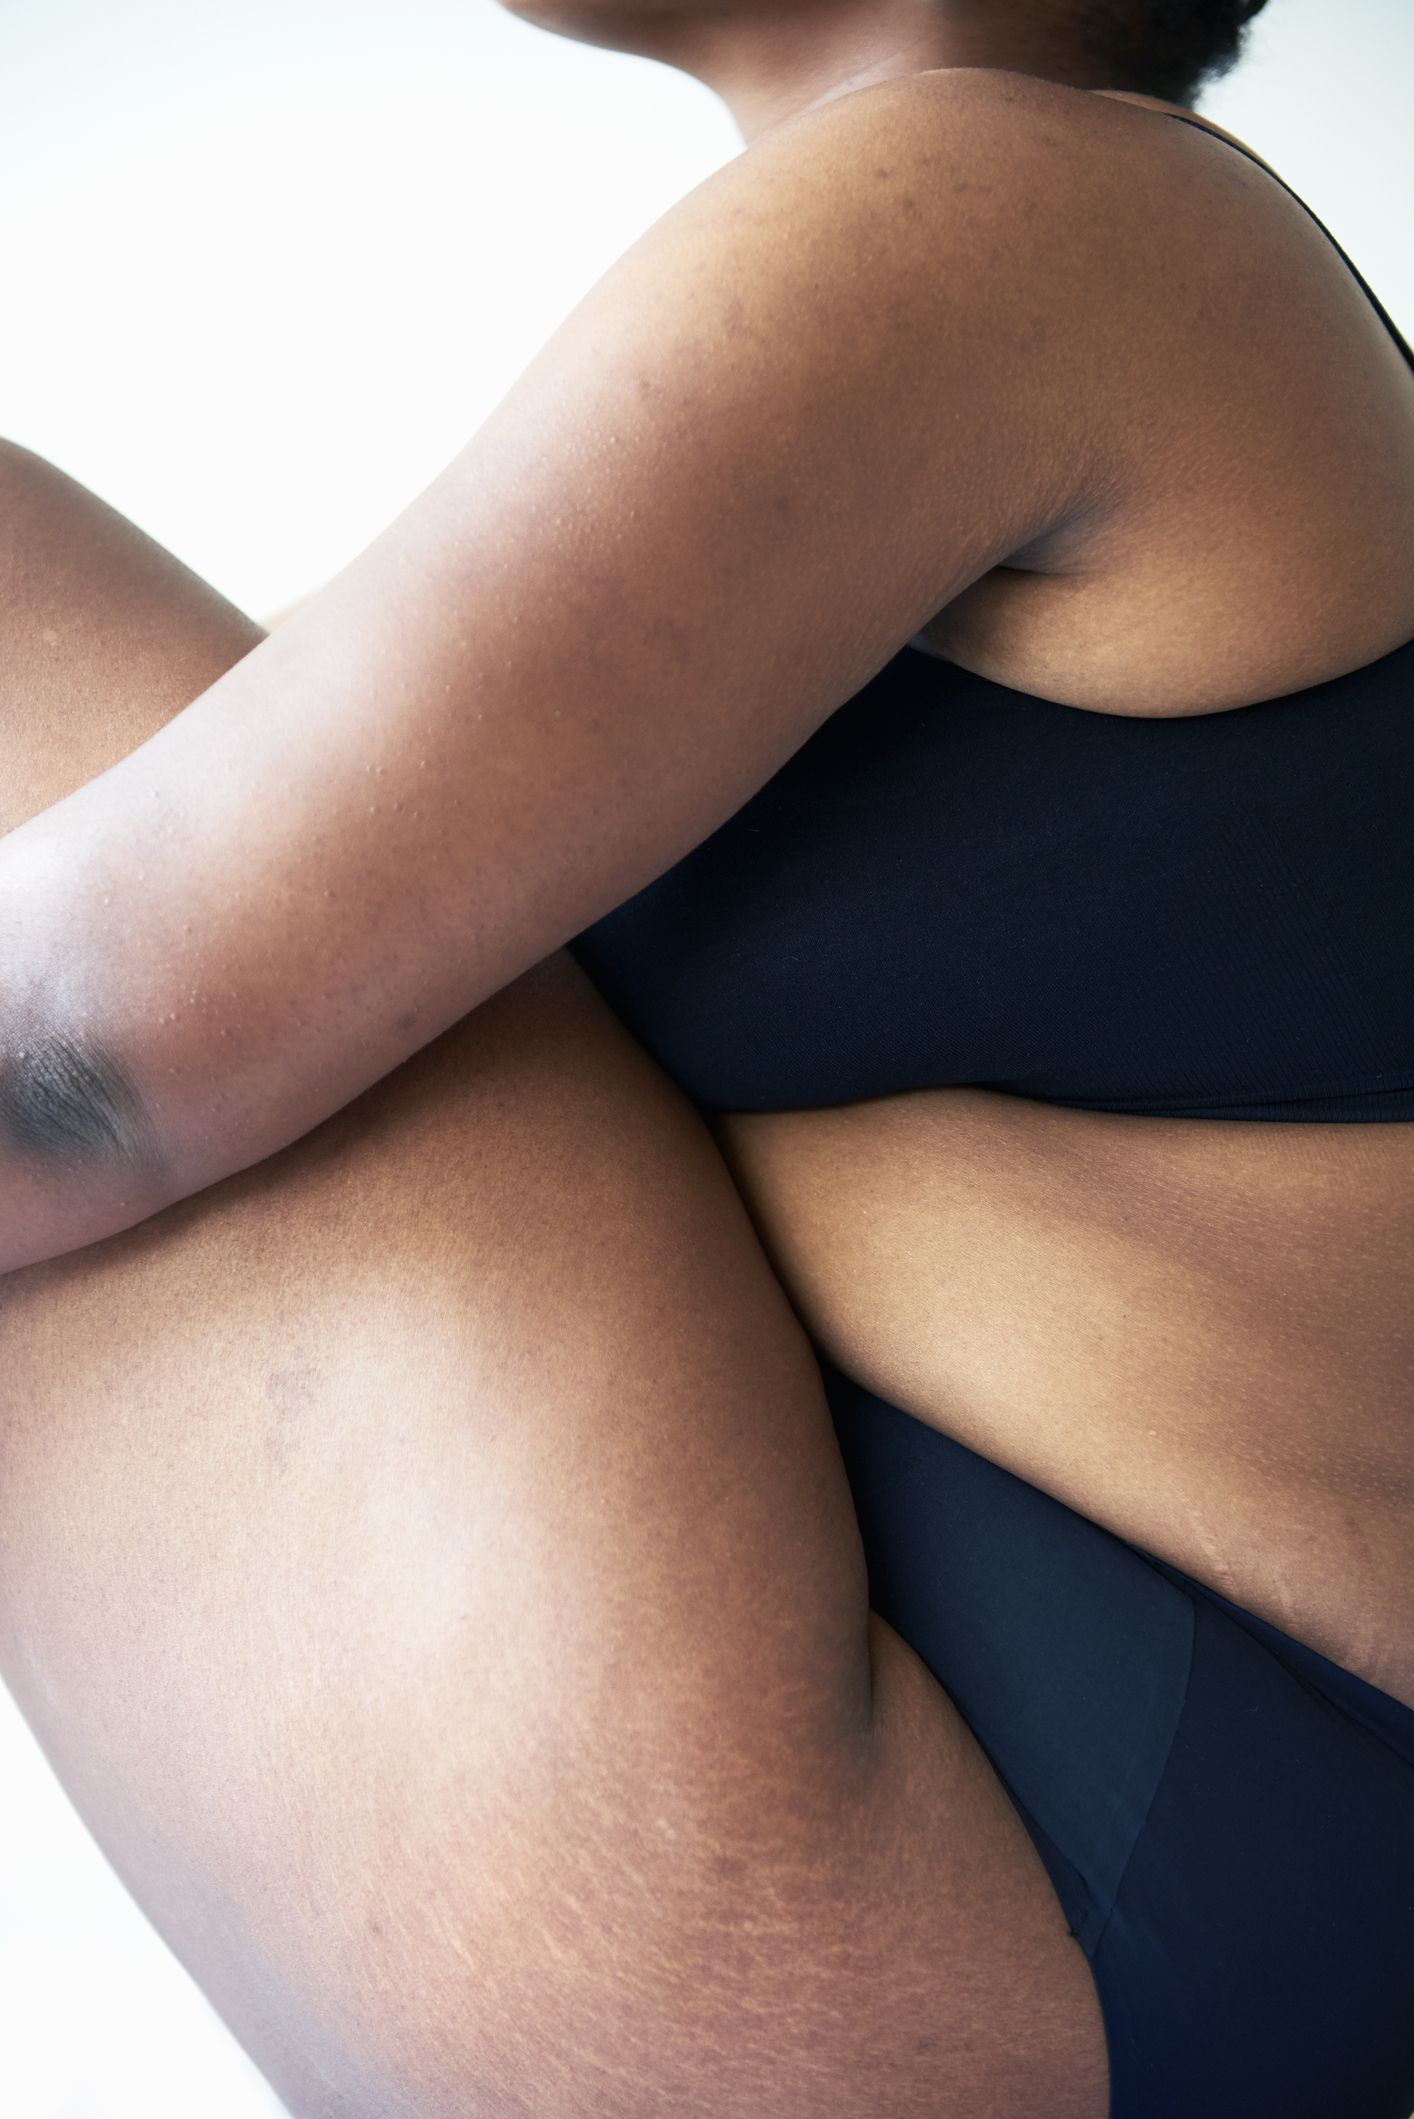 Why Is My Vagina Itchy? 5 Common Causes and How to Find Relief